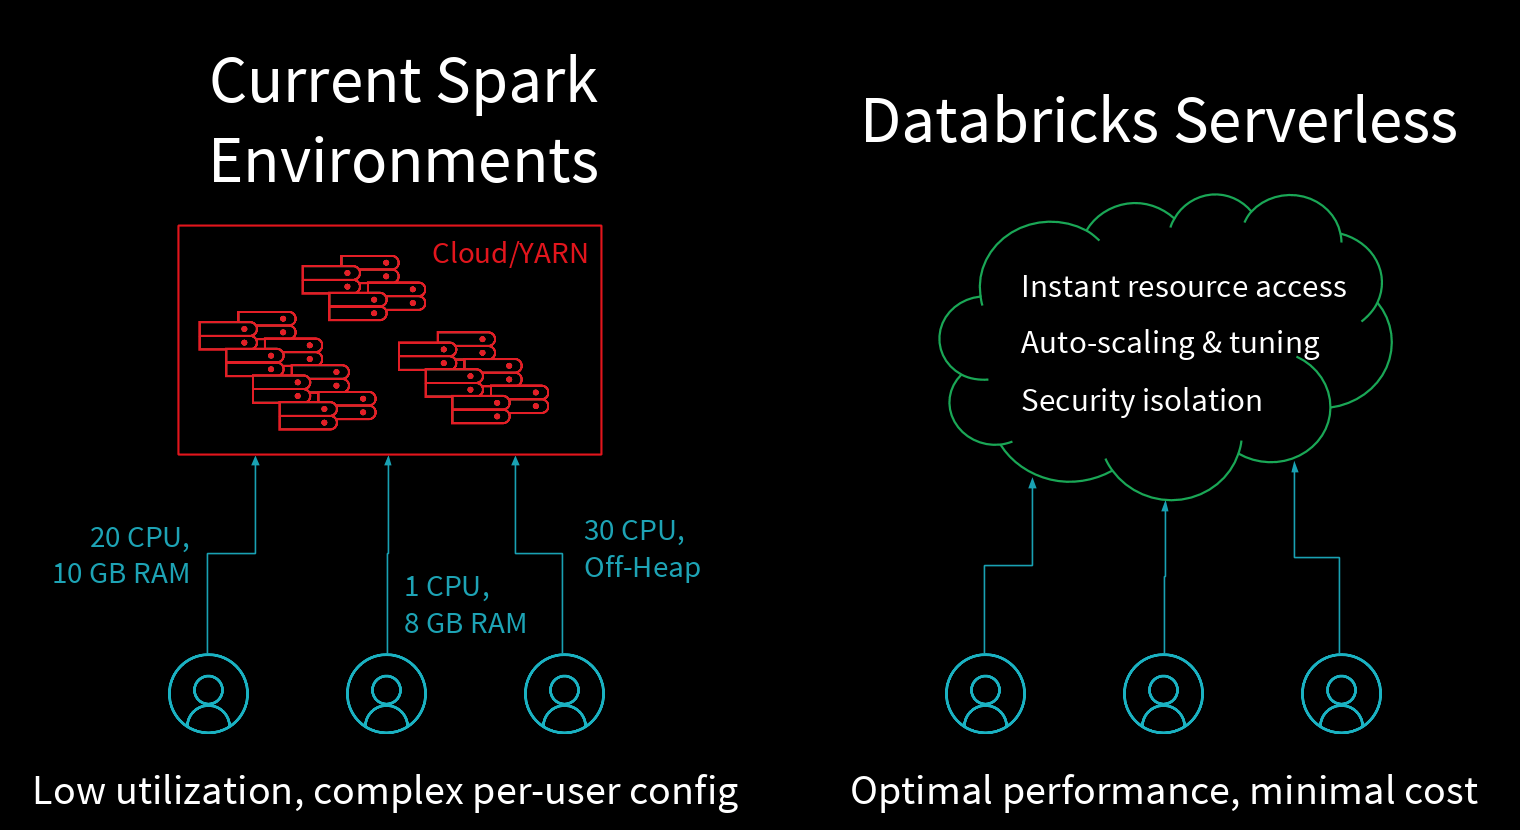 Databricks Serverless